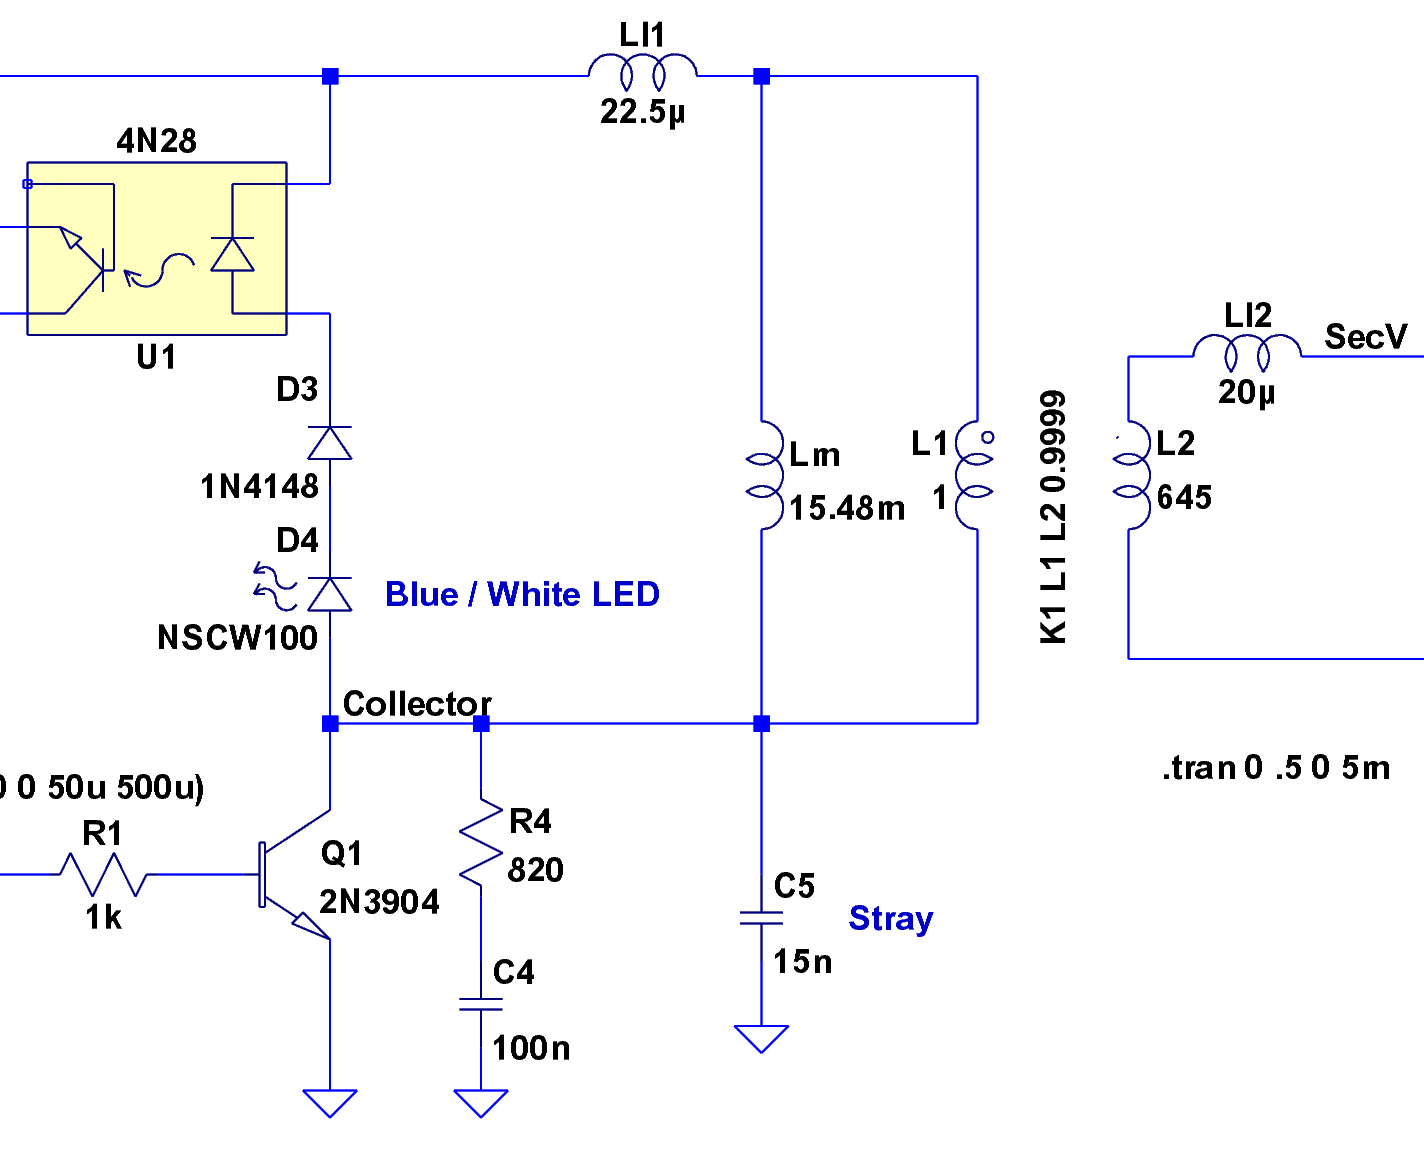 Dtmf detection in GSM modem - schematic